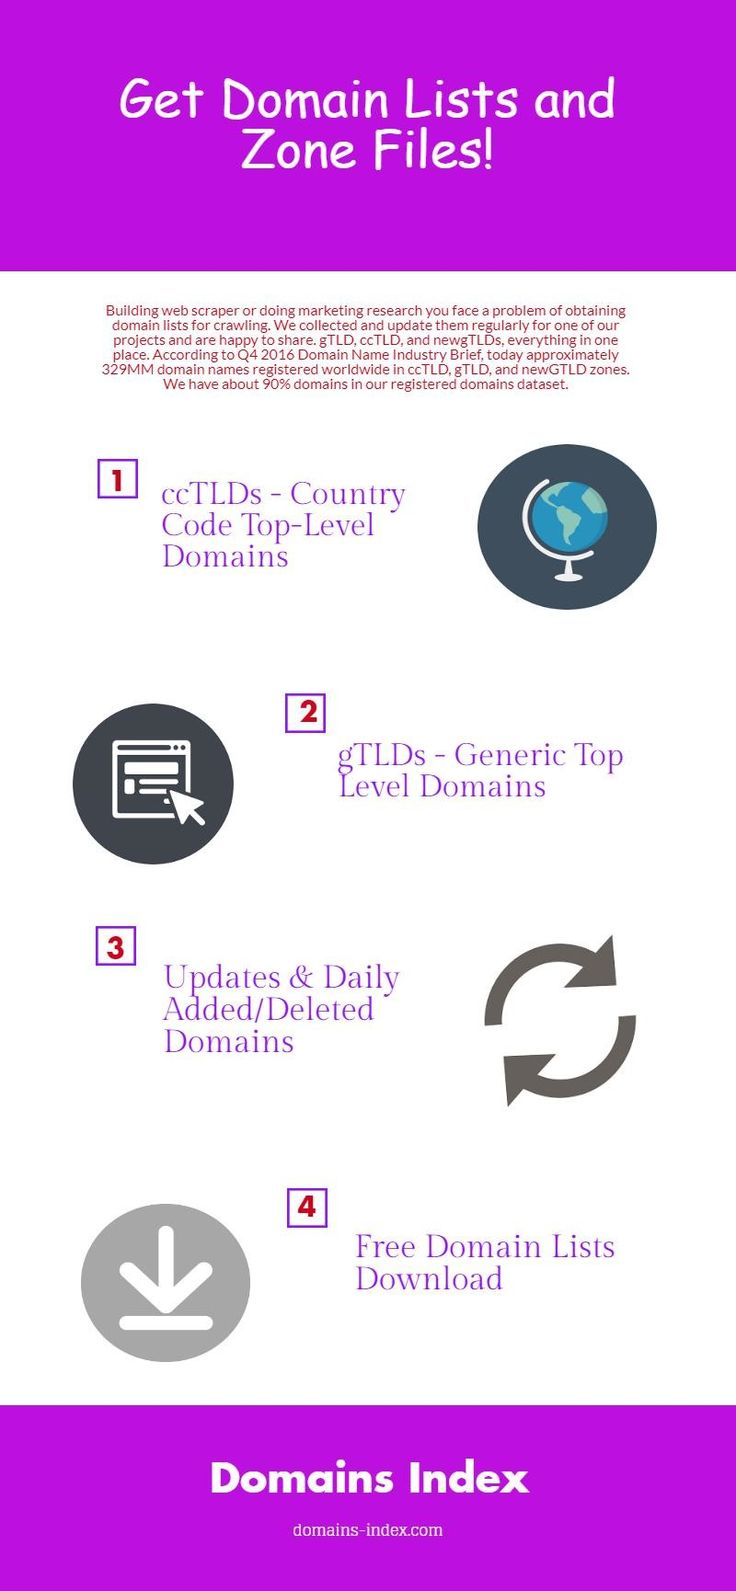 Get Domain Lists and Zone Files !  Building web scraper or doing marketing research you face a problem of obtaining domain lists for crawling. We collected and update them regularly for one of our projects and are happy to share. gTLD, ccTLD, and newgTLDs, everything in one place. According to Q4 2016 Domain Name Industry Brief, today approximately 329MM domain names registered worldwide in ccTLD, gTLD, and newGTLD zones. We have about 90% domains in our registered domains dataset.